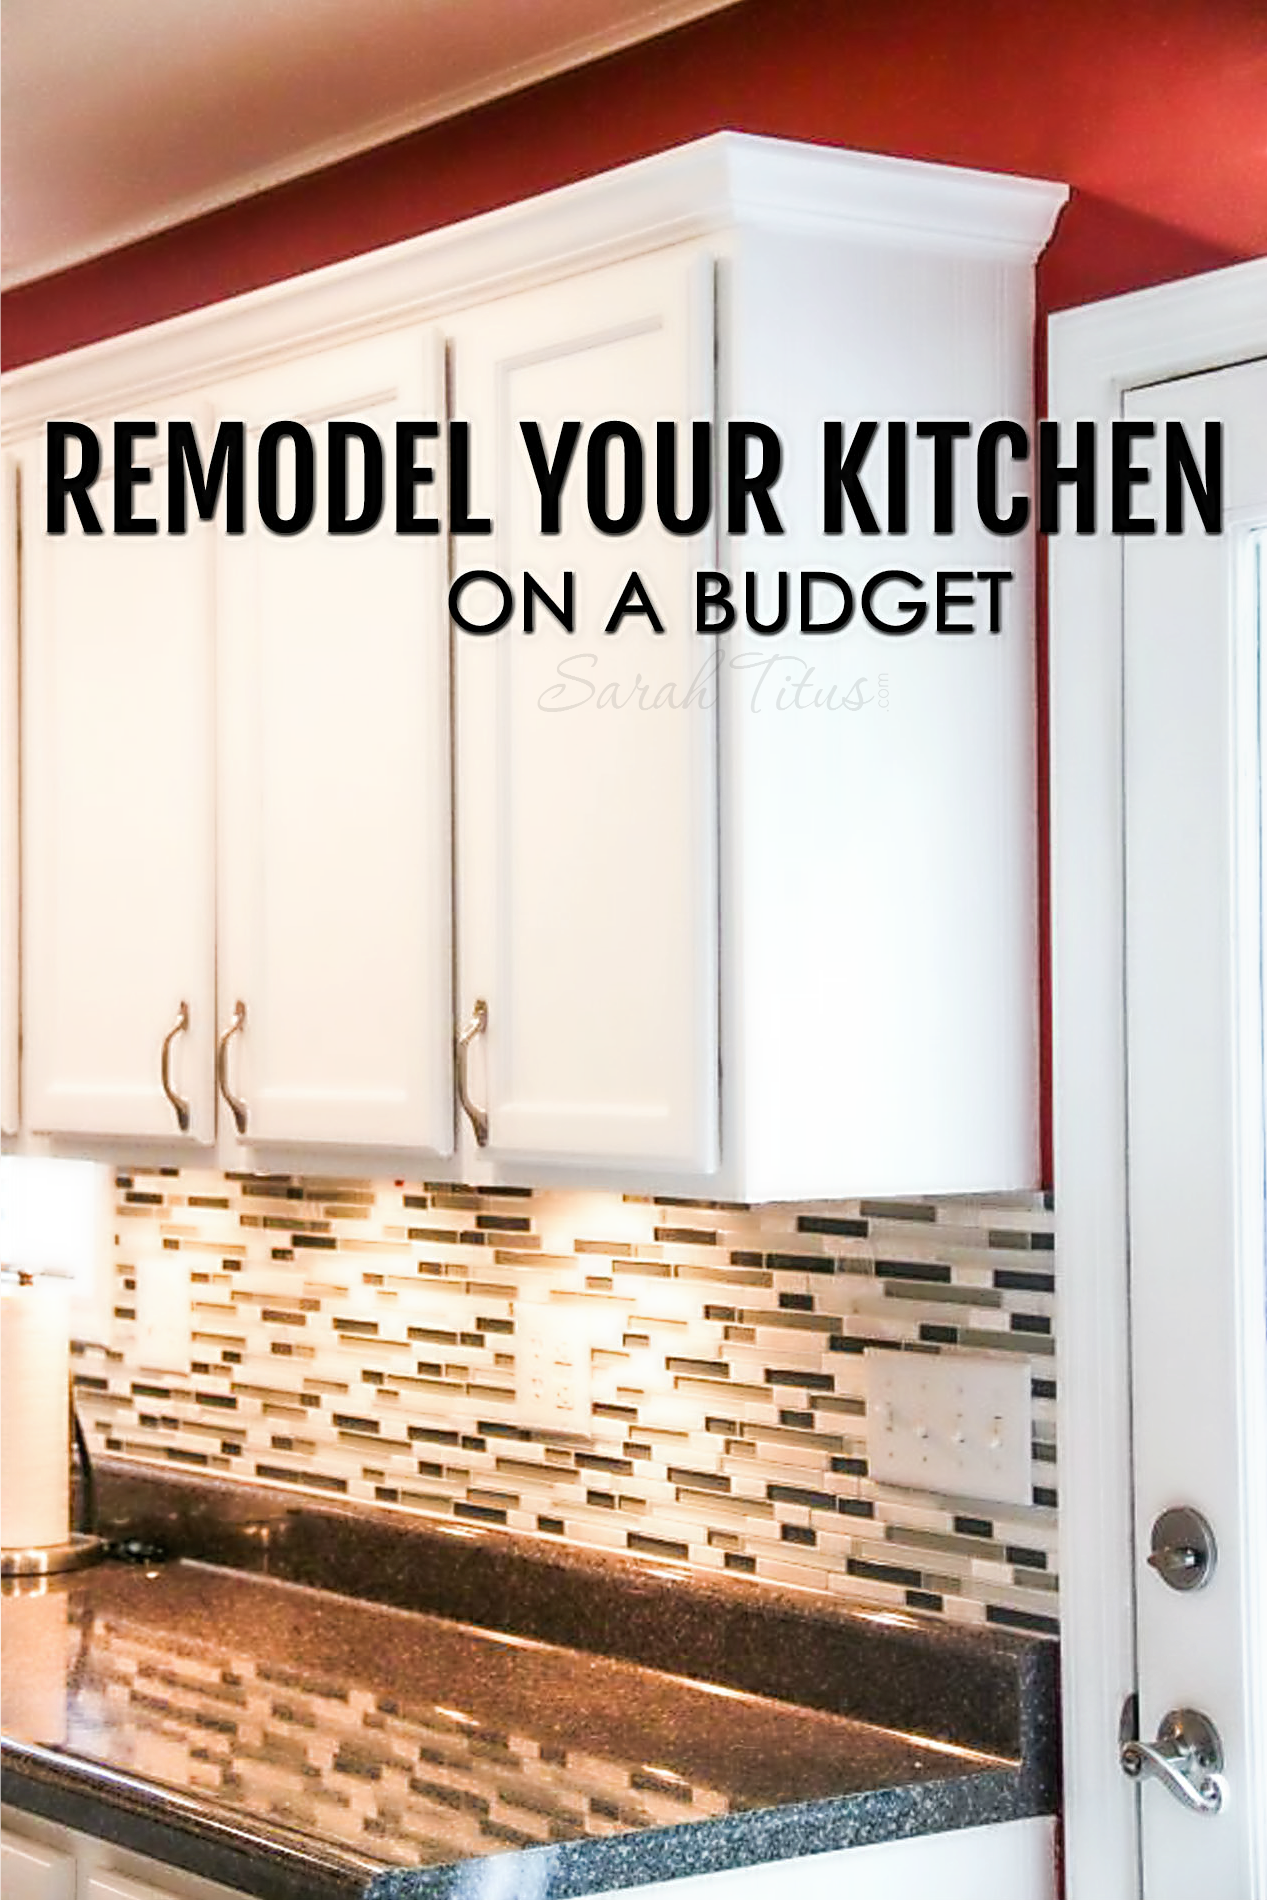 Most Kitchen Renovations Are Very Expensive But This Trick Can Make Your Kitchen Look Brand